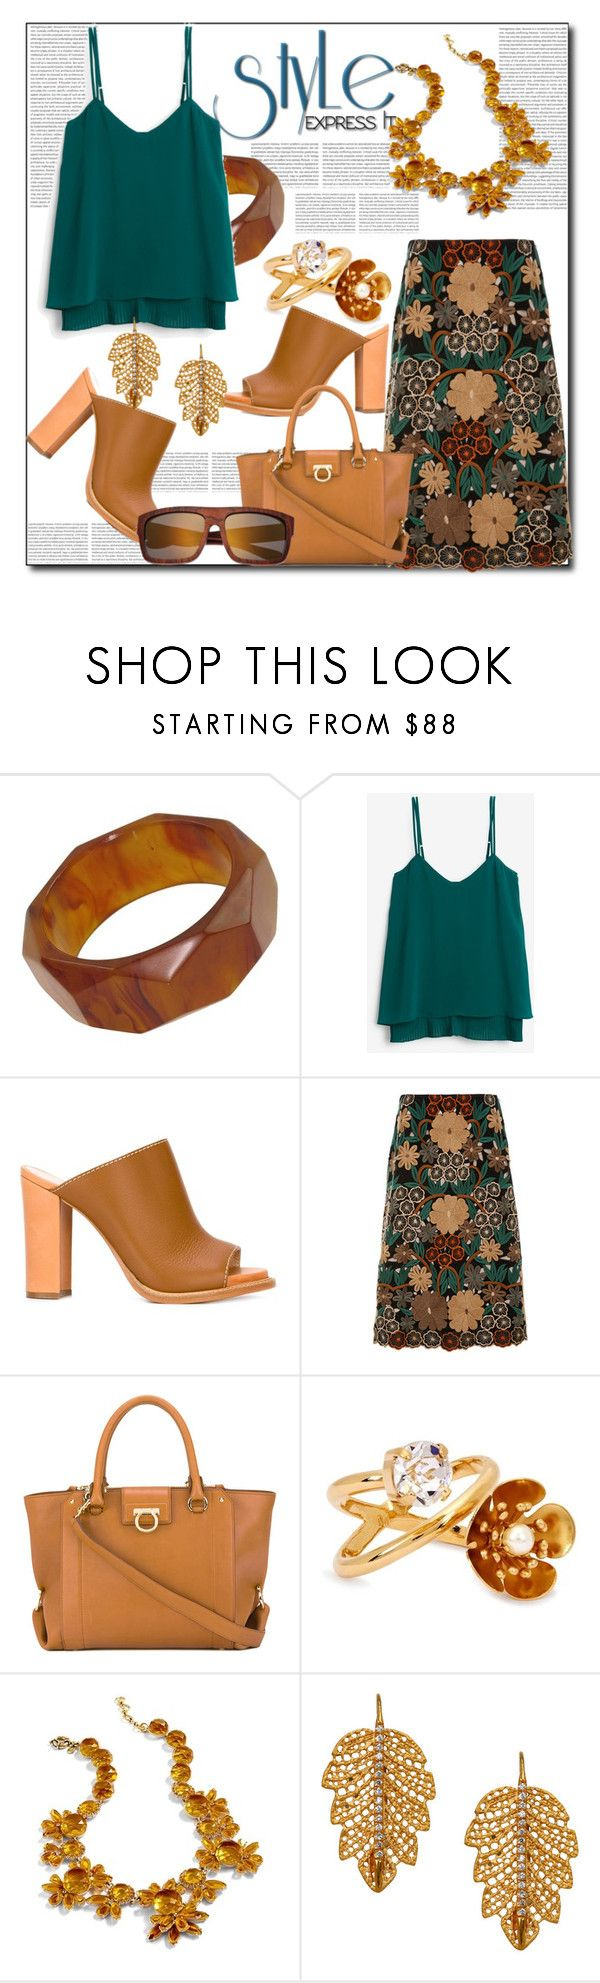 """""""Style: Express It"""" by helenaymangual ❤ liked on Polyvore featuring White House Black Market, Erika Cavallini Semi-Couture, Monique Lhuillier, Salvatore Ferragamo, CA&LOU, J.Crew, Marika and Earth"""